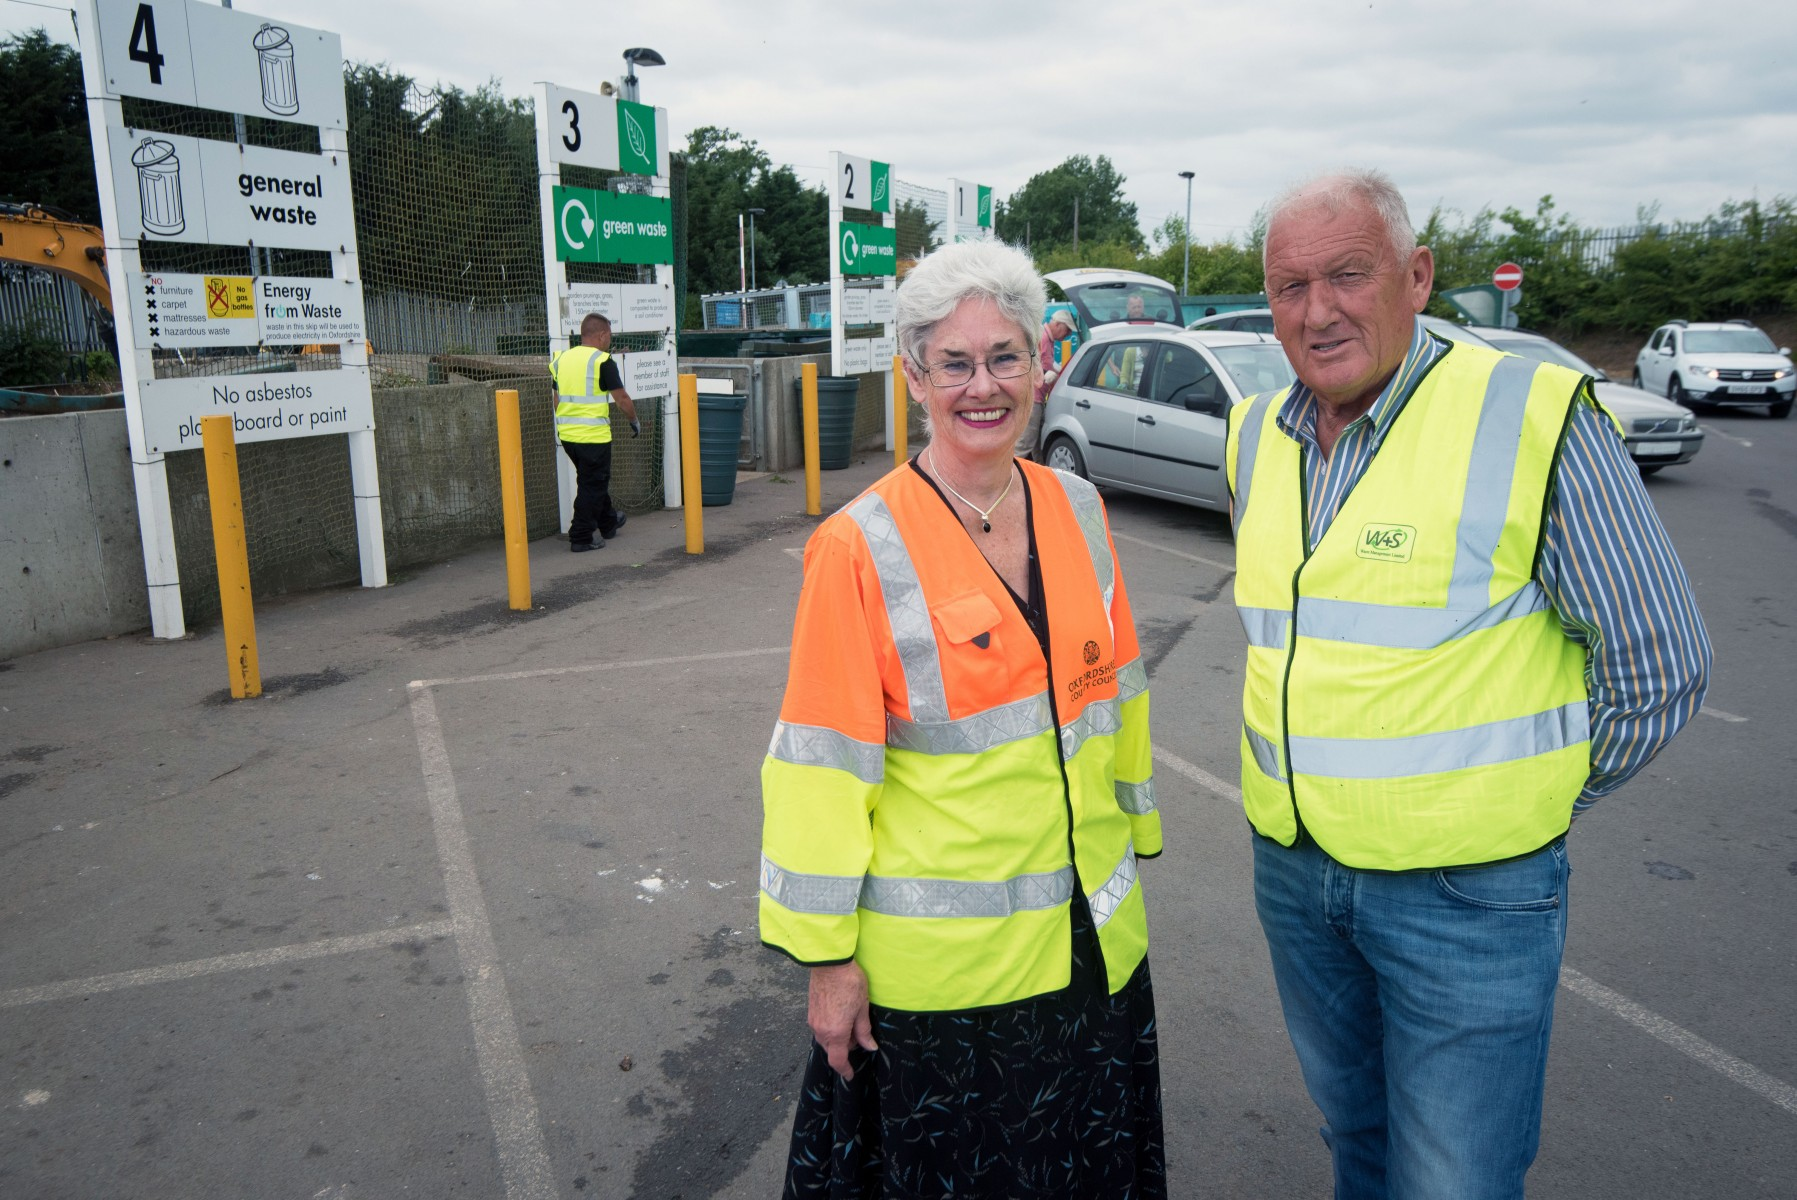 Oxfordshire County Councillor Yvonne Constance, Cabinet Member for Environment and Geoff Thompson, owner of W&S Recycling